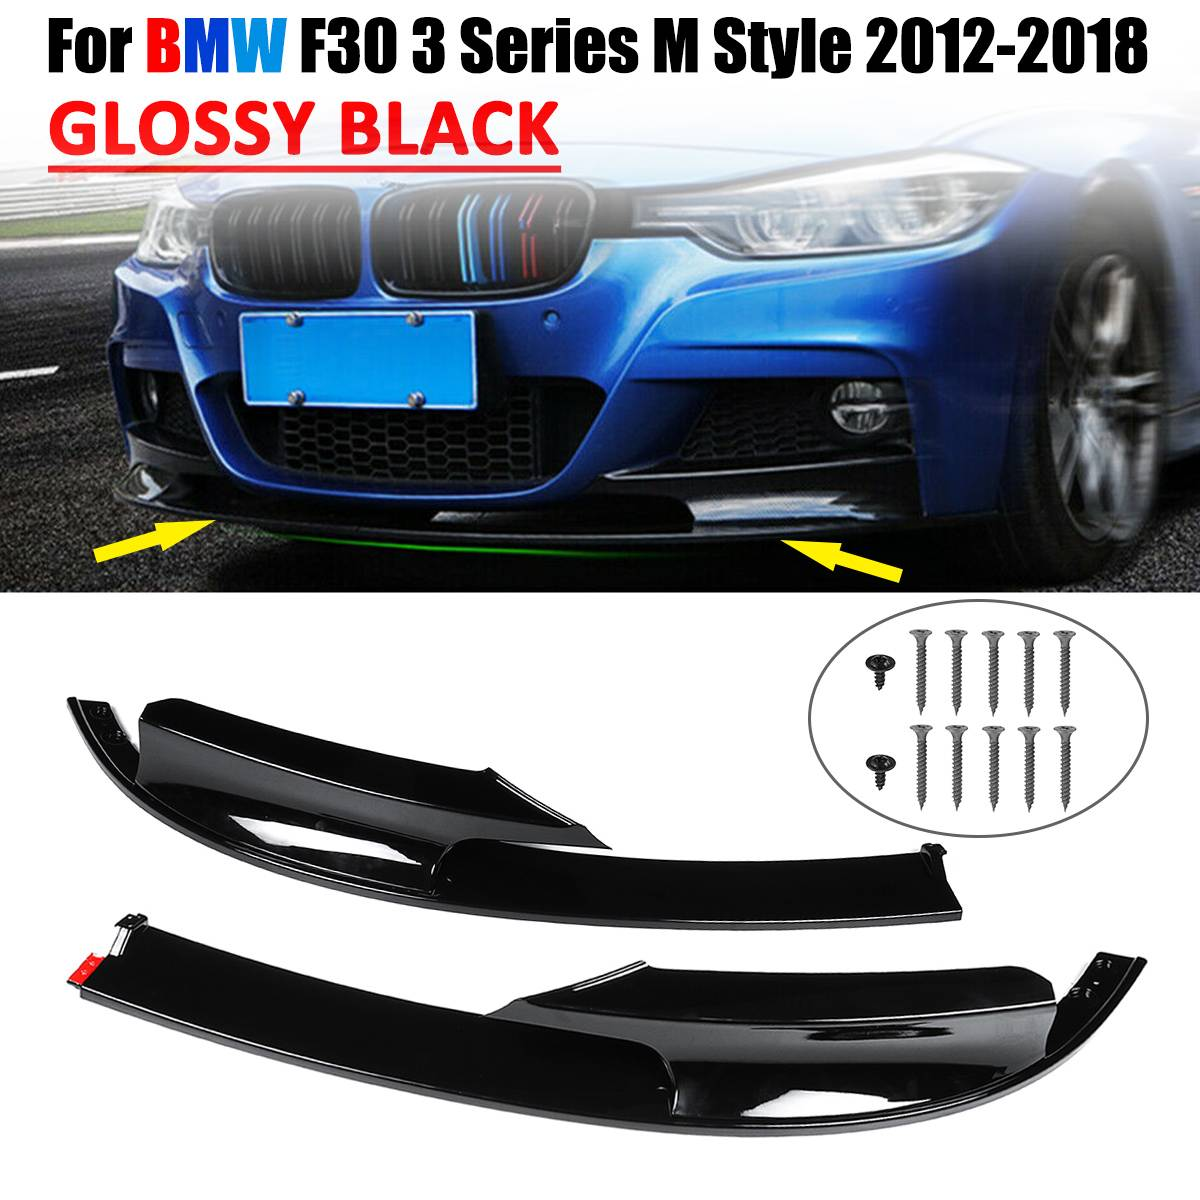 For BMW F30 3 Series 2012-18 M Style Gloss Black Front Bumper Lip Spoiler Trim*2